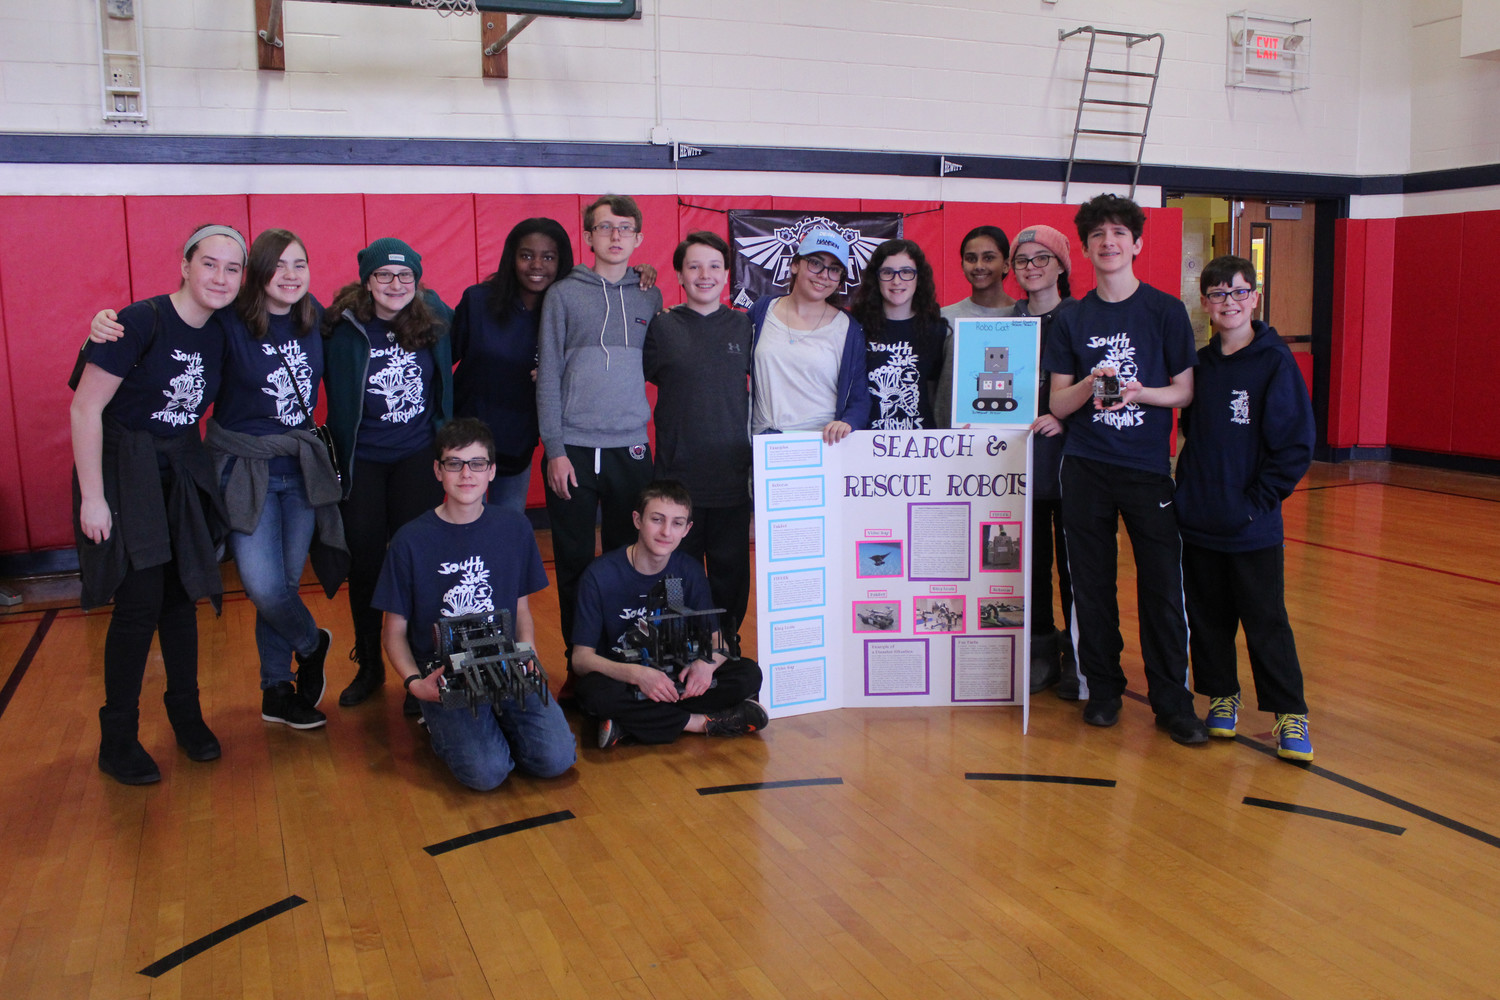 These South Side Middle School students were among about 50 from the school that competed in the Southern New York Vex IQ State Robotics Championship last Saturday.